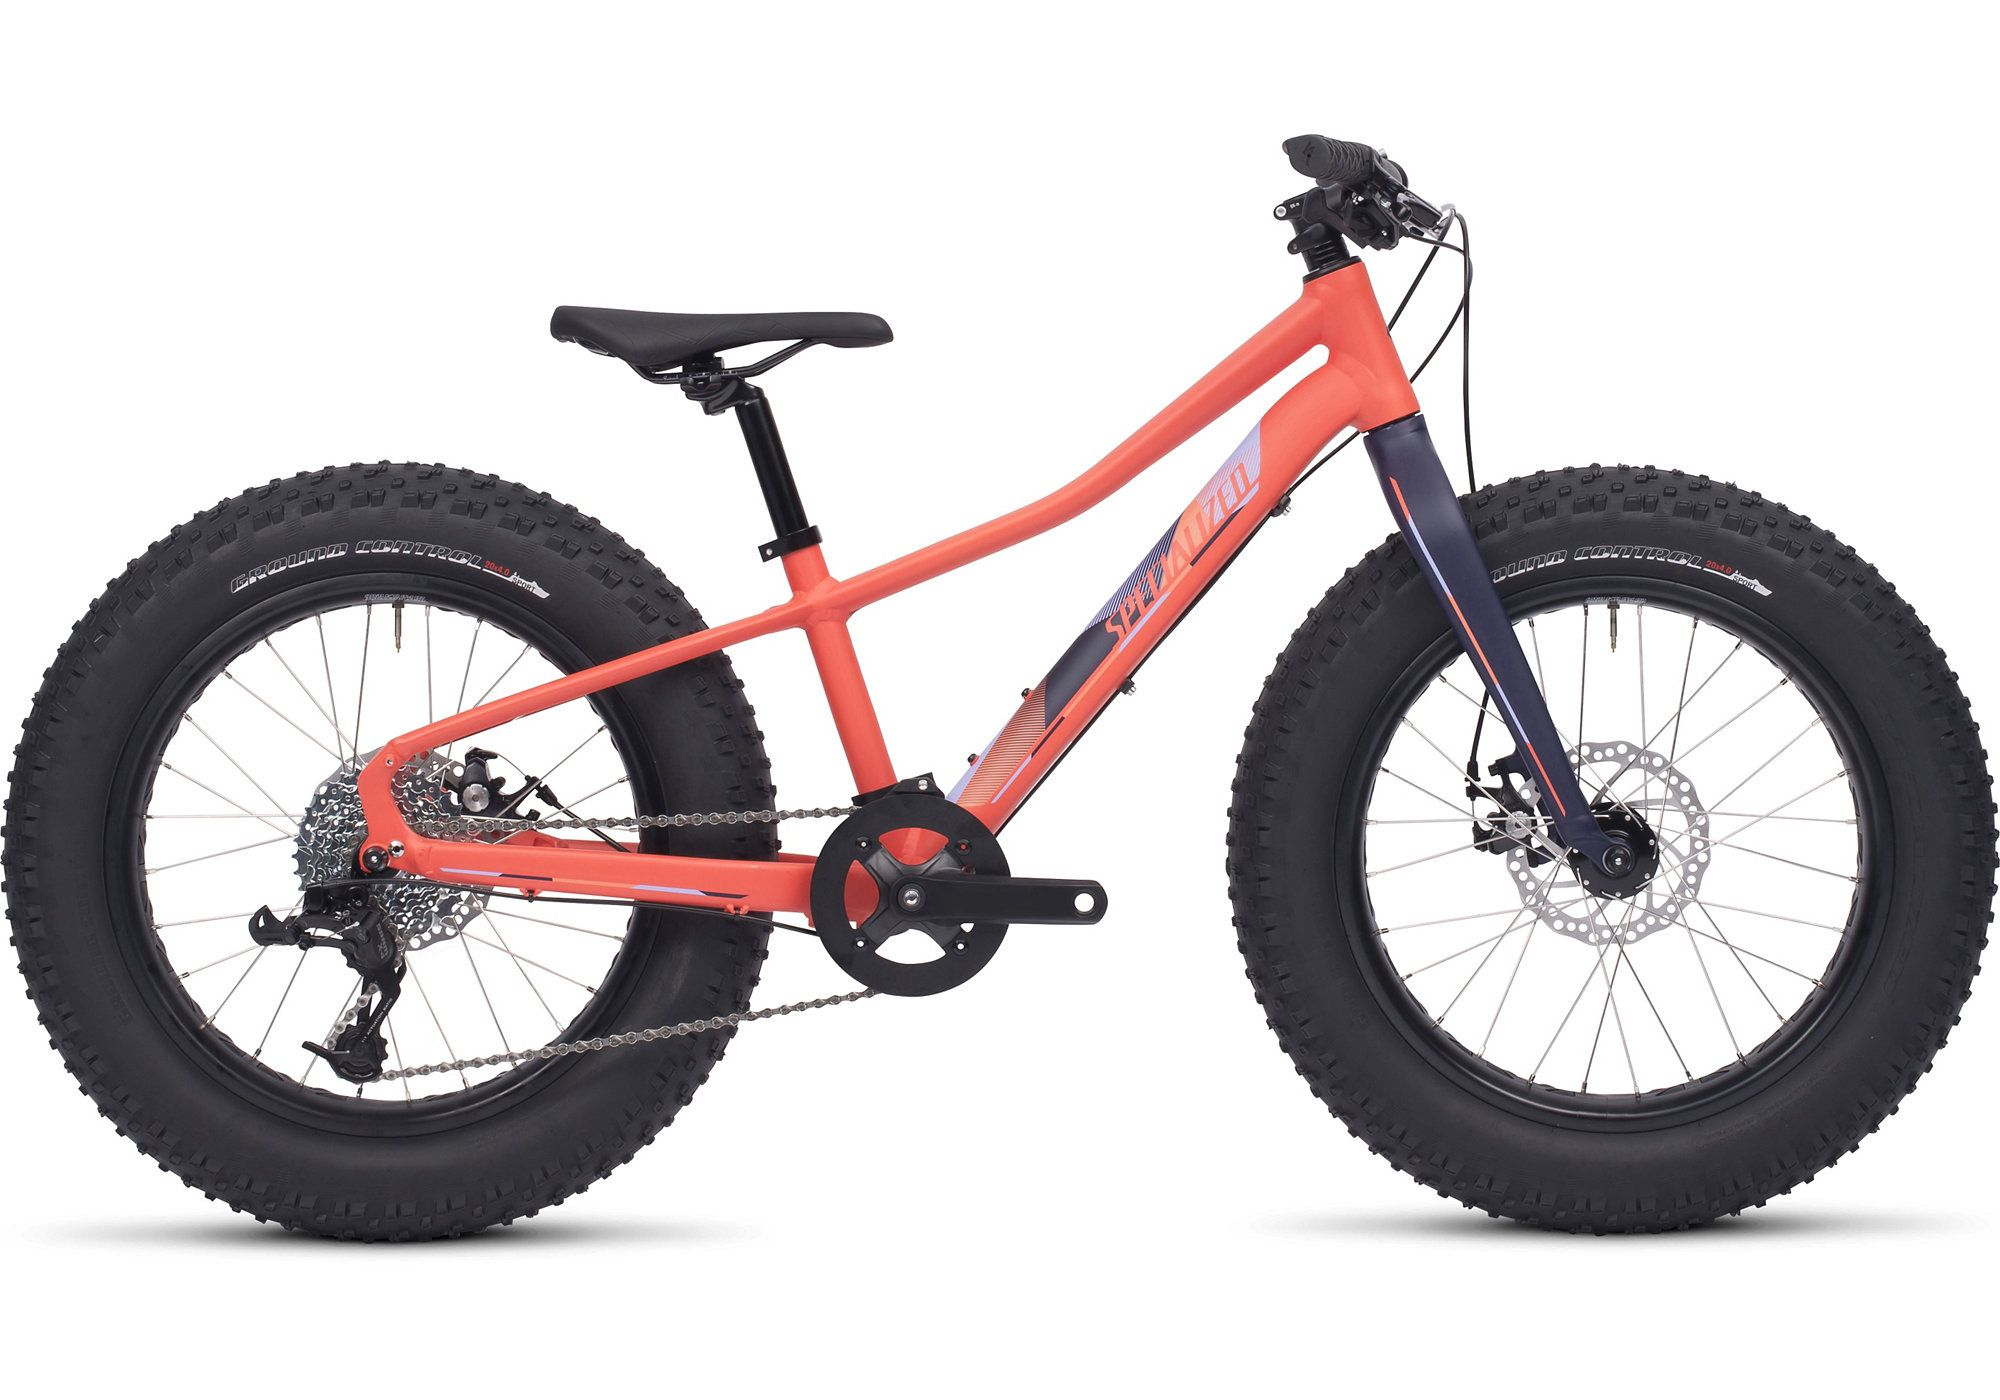 Велосипед Specialized Fatboy 20 2016 велосипед specialized ruby sport 2016